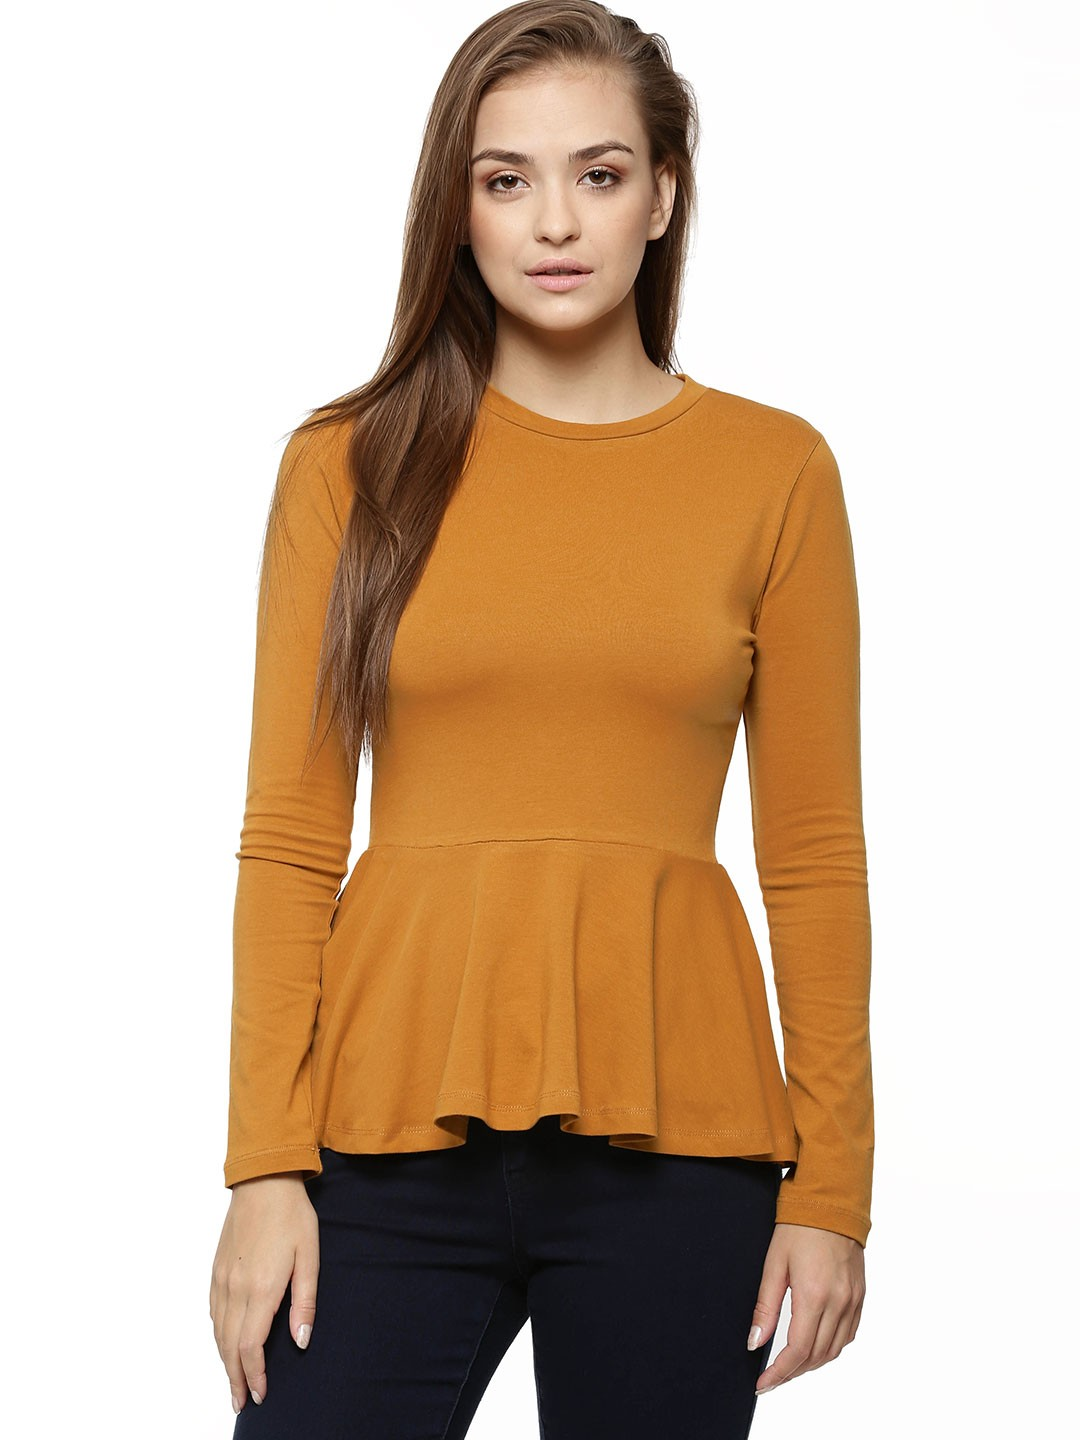 Tops For Girls: Shop for Ladies Tops & Tees online at best prices in India. Choose from a wide range of Tops For Women at flip13bubble.tk Get Free 1 or 2 day delivery with Amazon Prime, EMI offers, Cash on Delivery on eligible purchases.